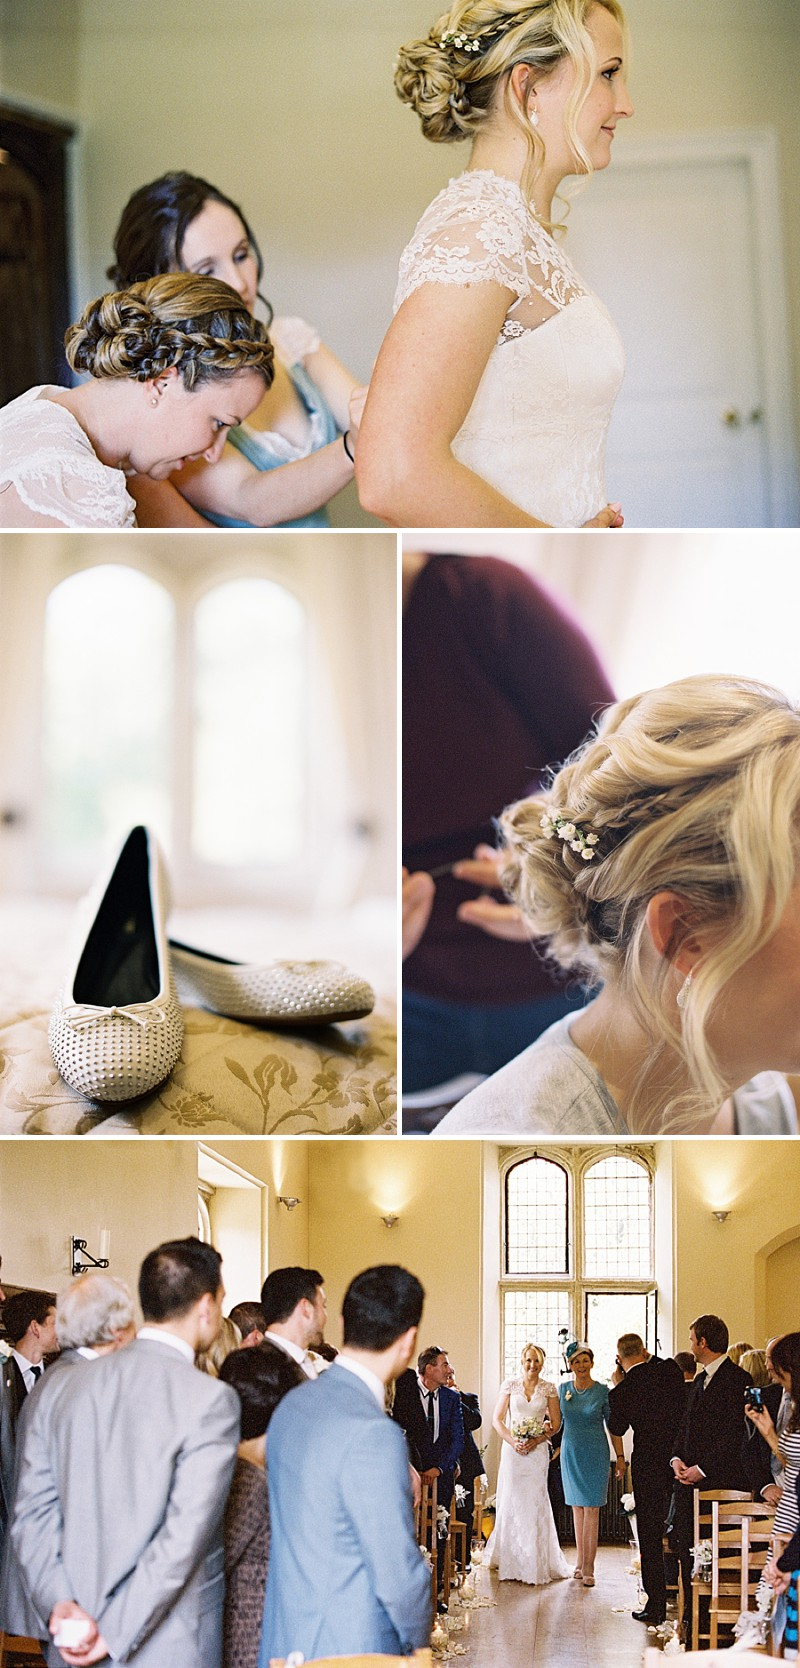 A Spring wedding at Notley Abbey with a bride in Captivating by Suzanne Neville and photography by Ann-Kathrin Koch_0267